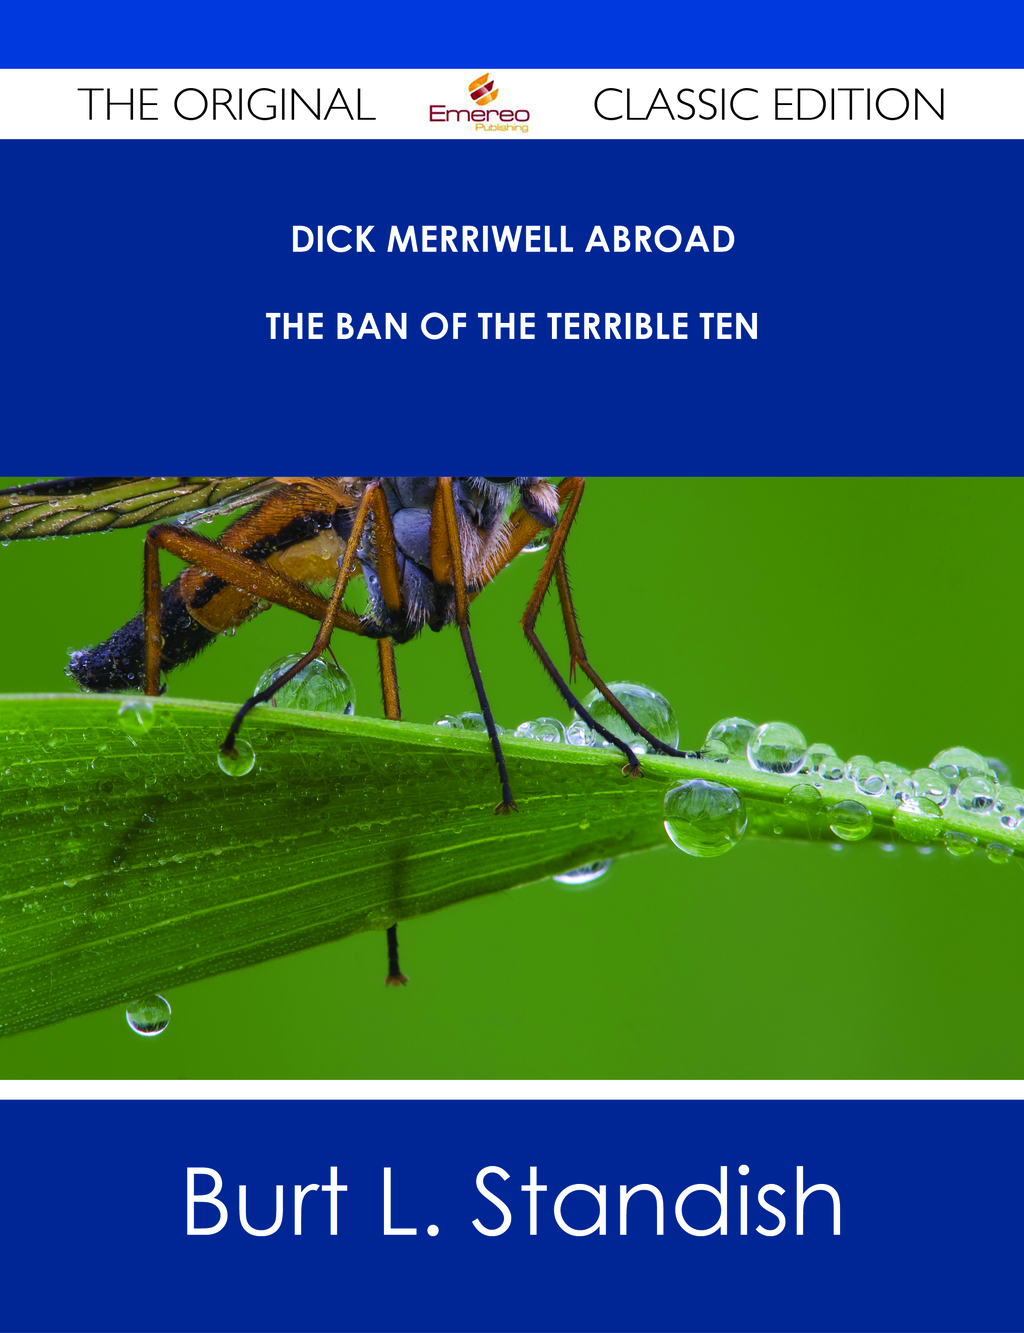 Dick Merriwell Abroad - The Ban of the Terrible Ten - The Original Classic Edition